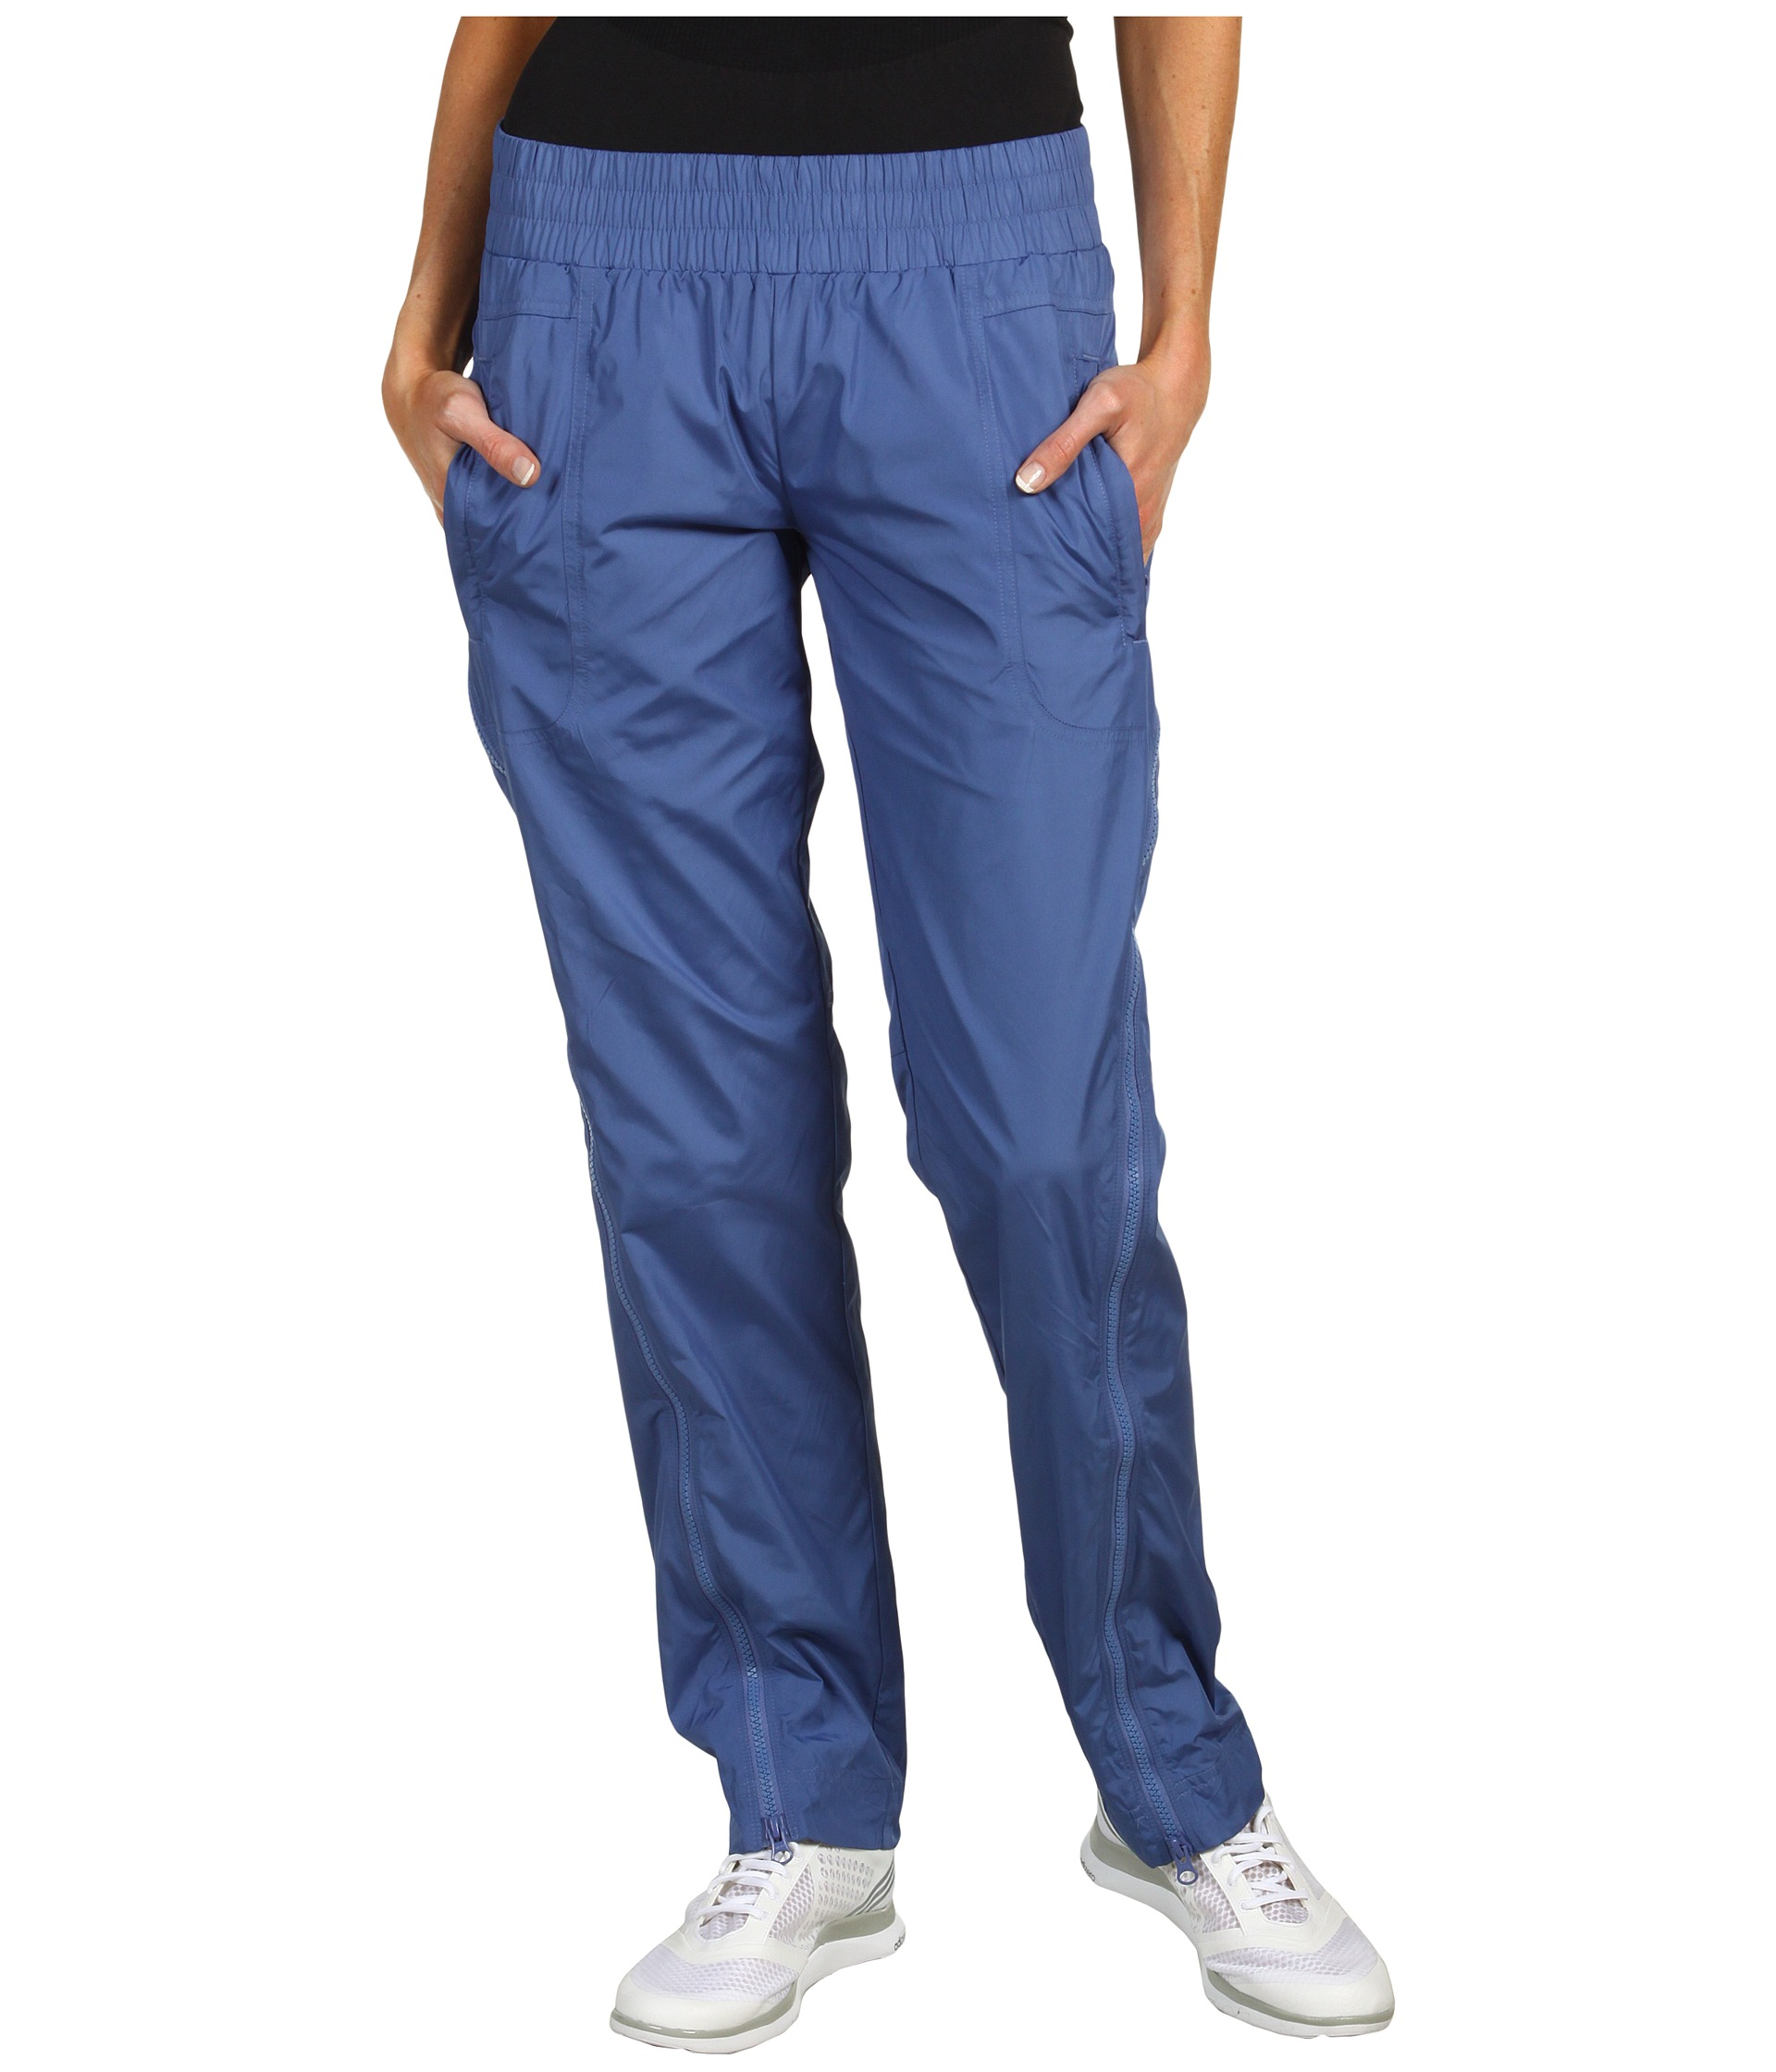 Adidas Stella McCartney Studio Woven Pants in Baby Blue Front View